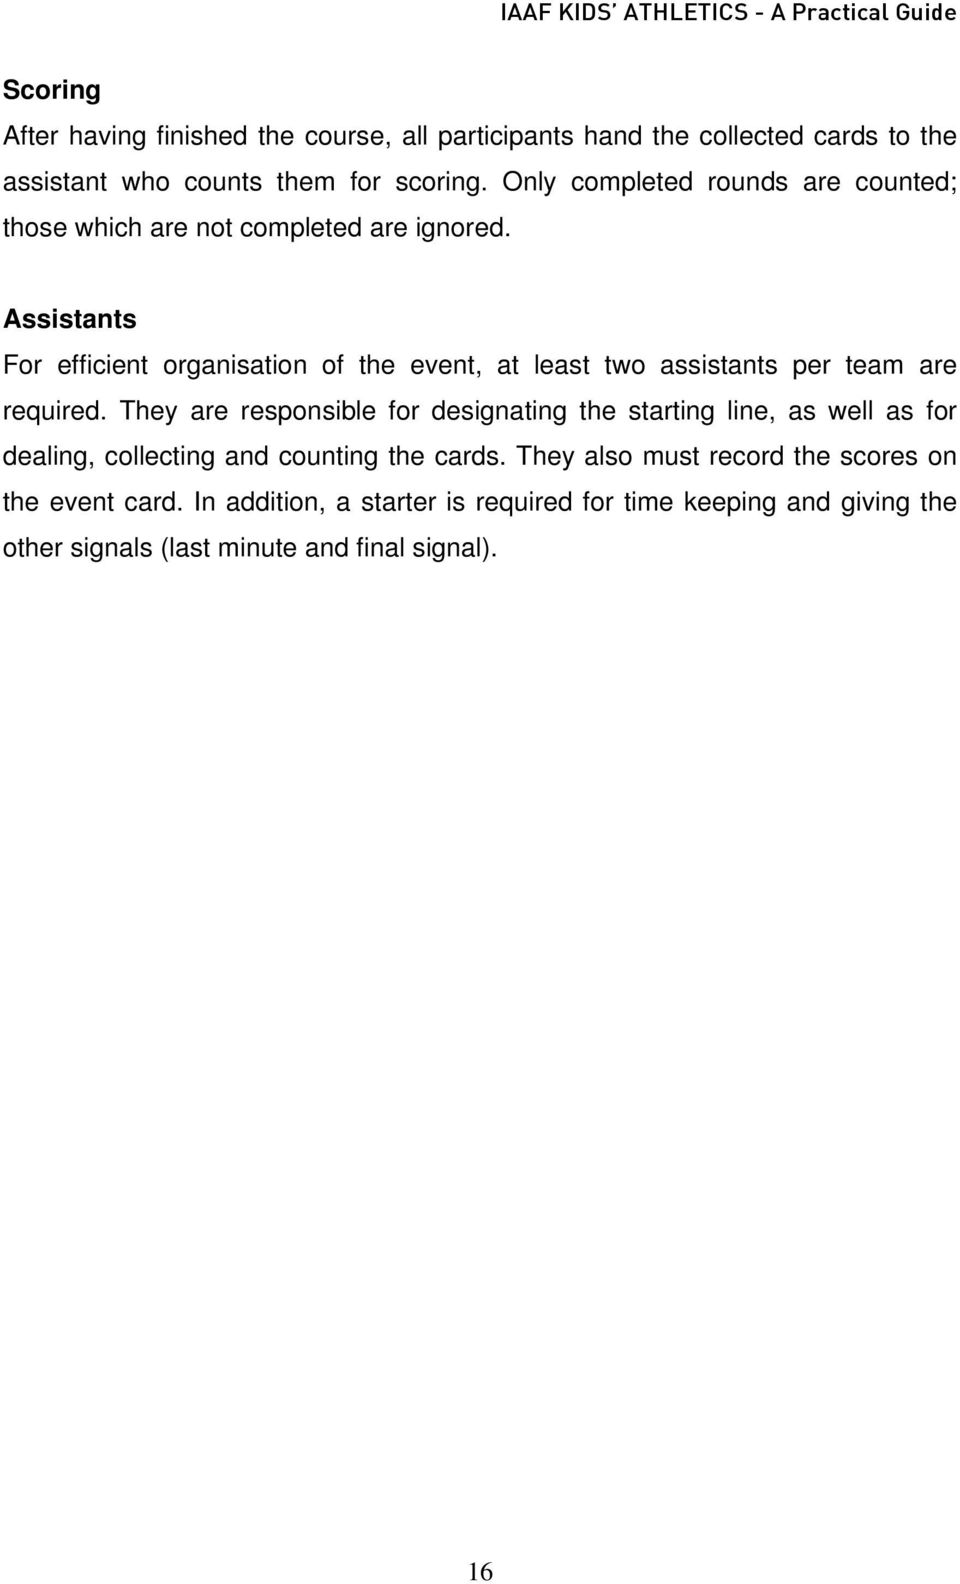 Assistants For efficient organisation of the event, at least two assistants per team are required.